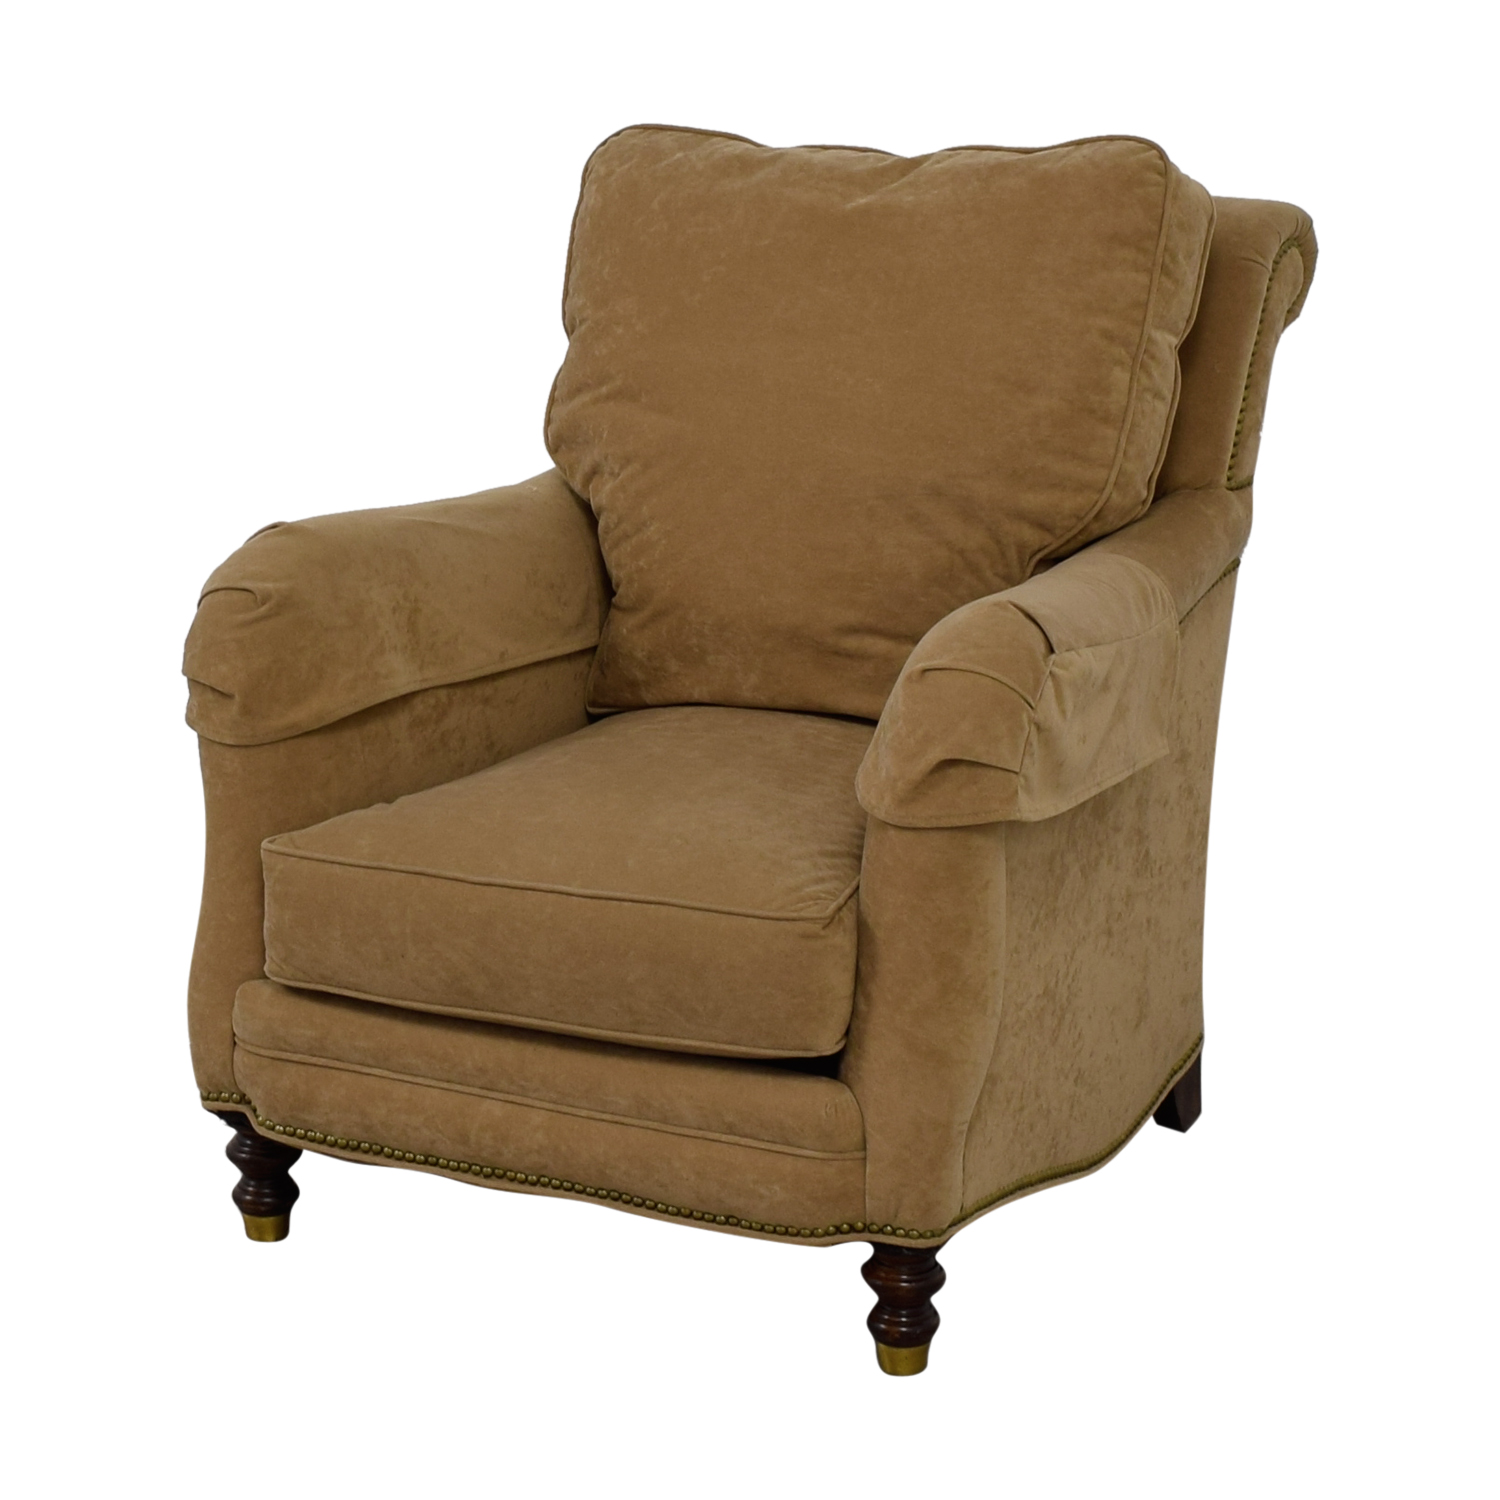 Oversuffed Accent Chair: Beige Overstuffed Accent Chair / Chairs